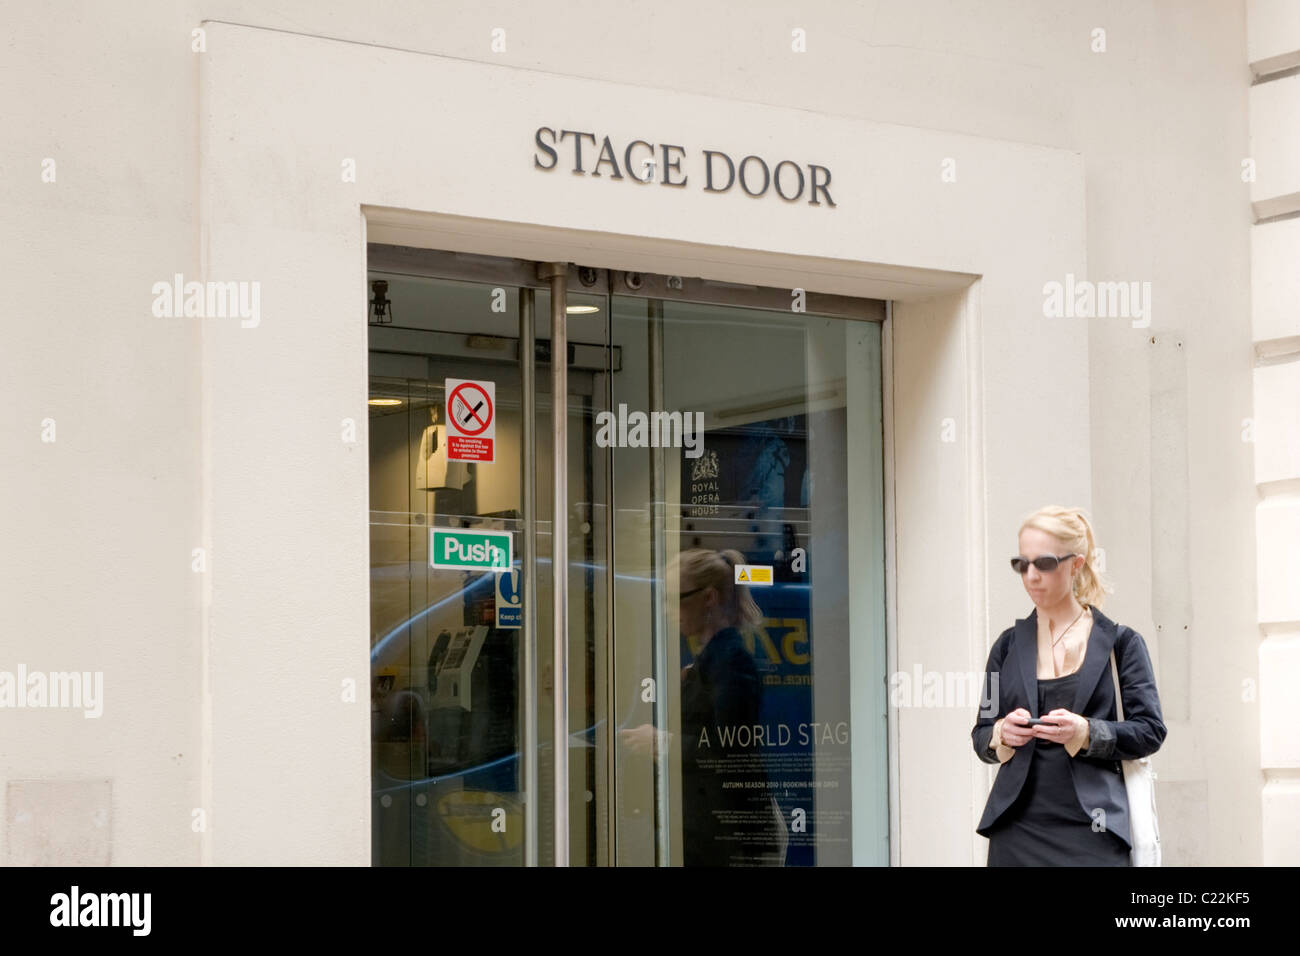 Covent Garden , Royal Opera House Stage Door With Pretty Young Blond Lady  Or Girl Or Woman In Sunglasses Waiting Outside